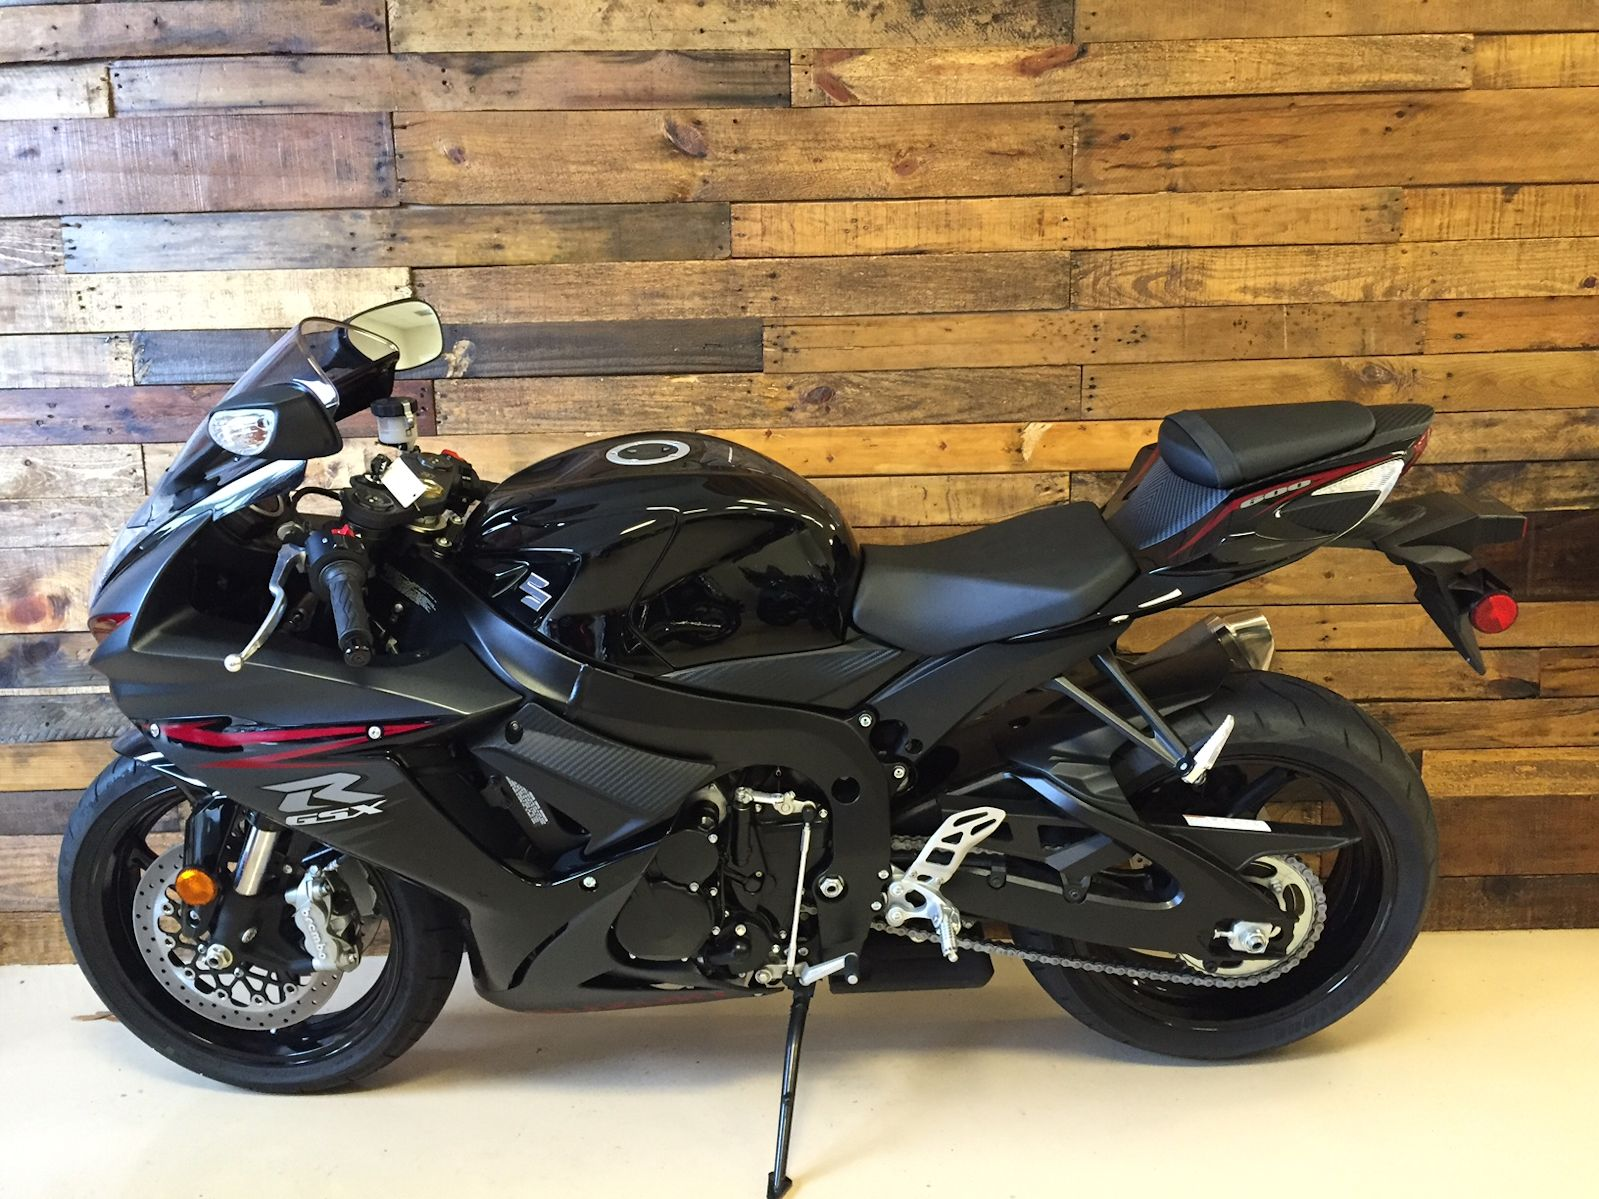 GSX Sport Bike Black and Red